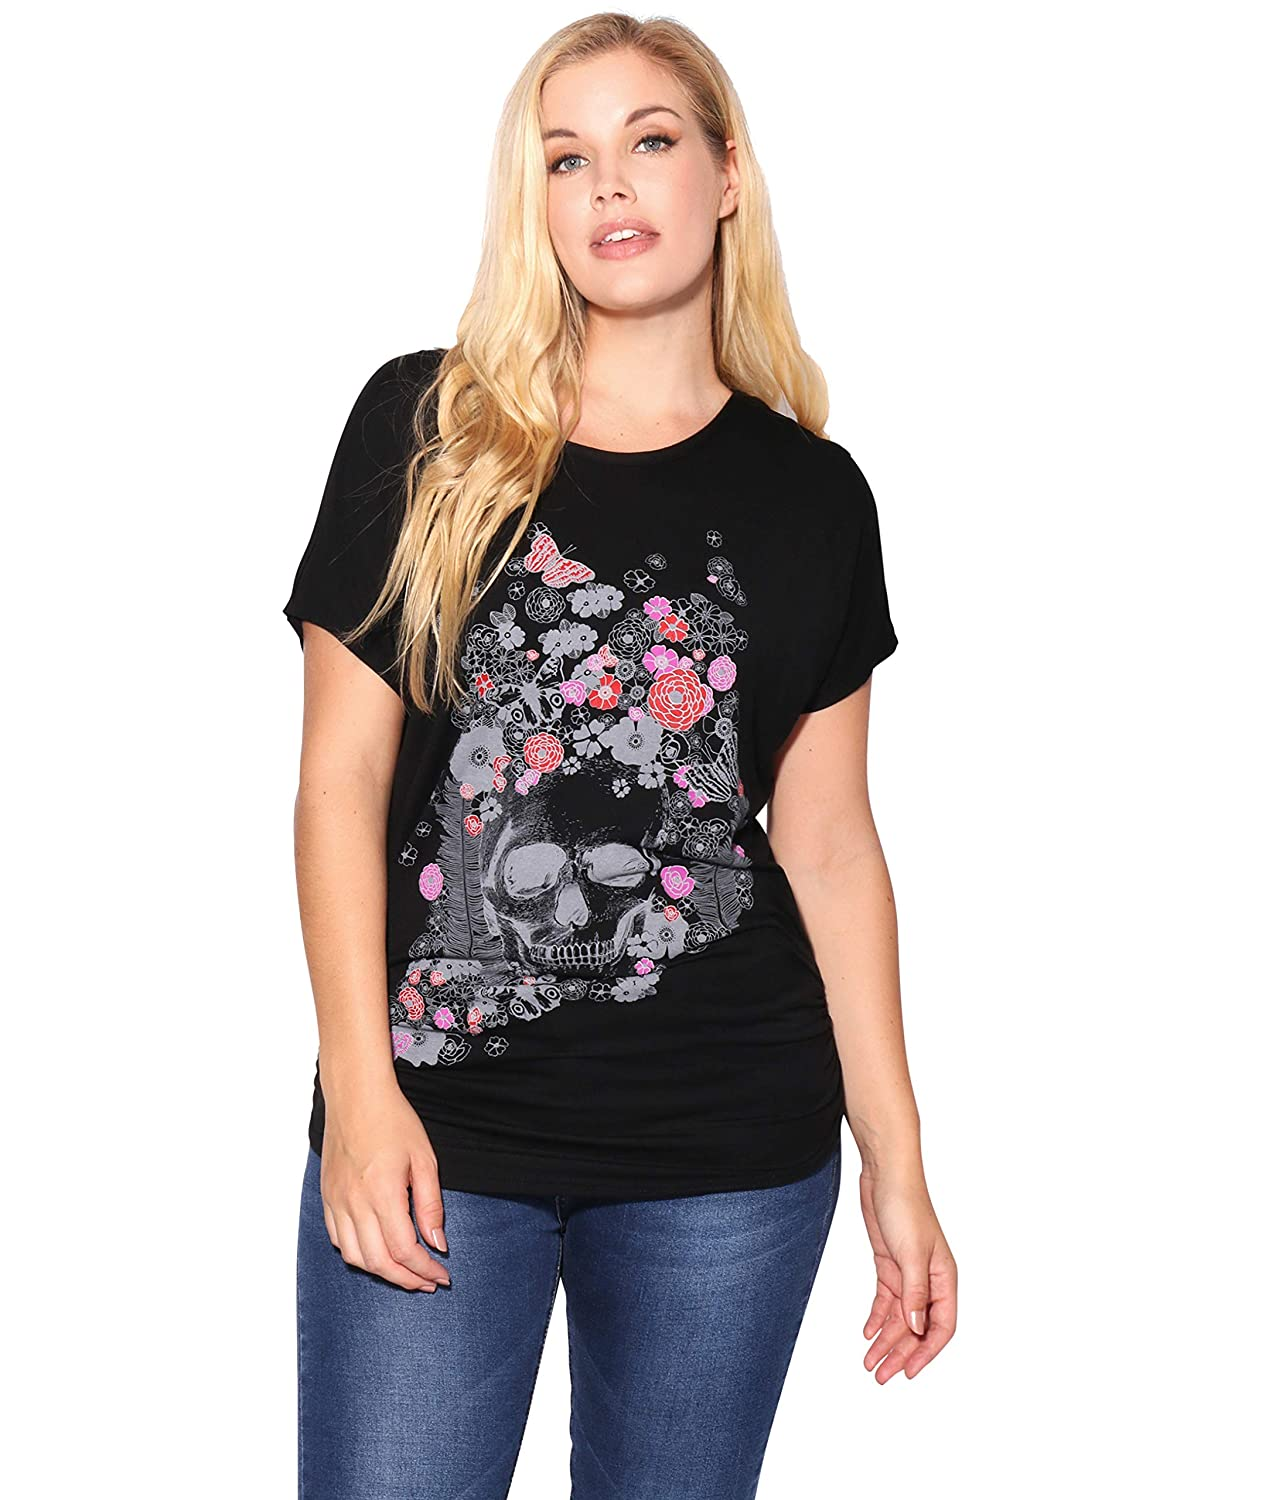 b360de179 Great party tee shirt with shiny animal print. Foil details with ruched  sides and banded hem. This tunic top is the perfect length to be worn with  ...